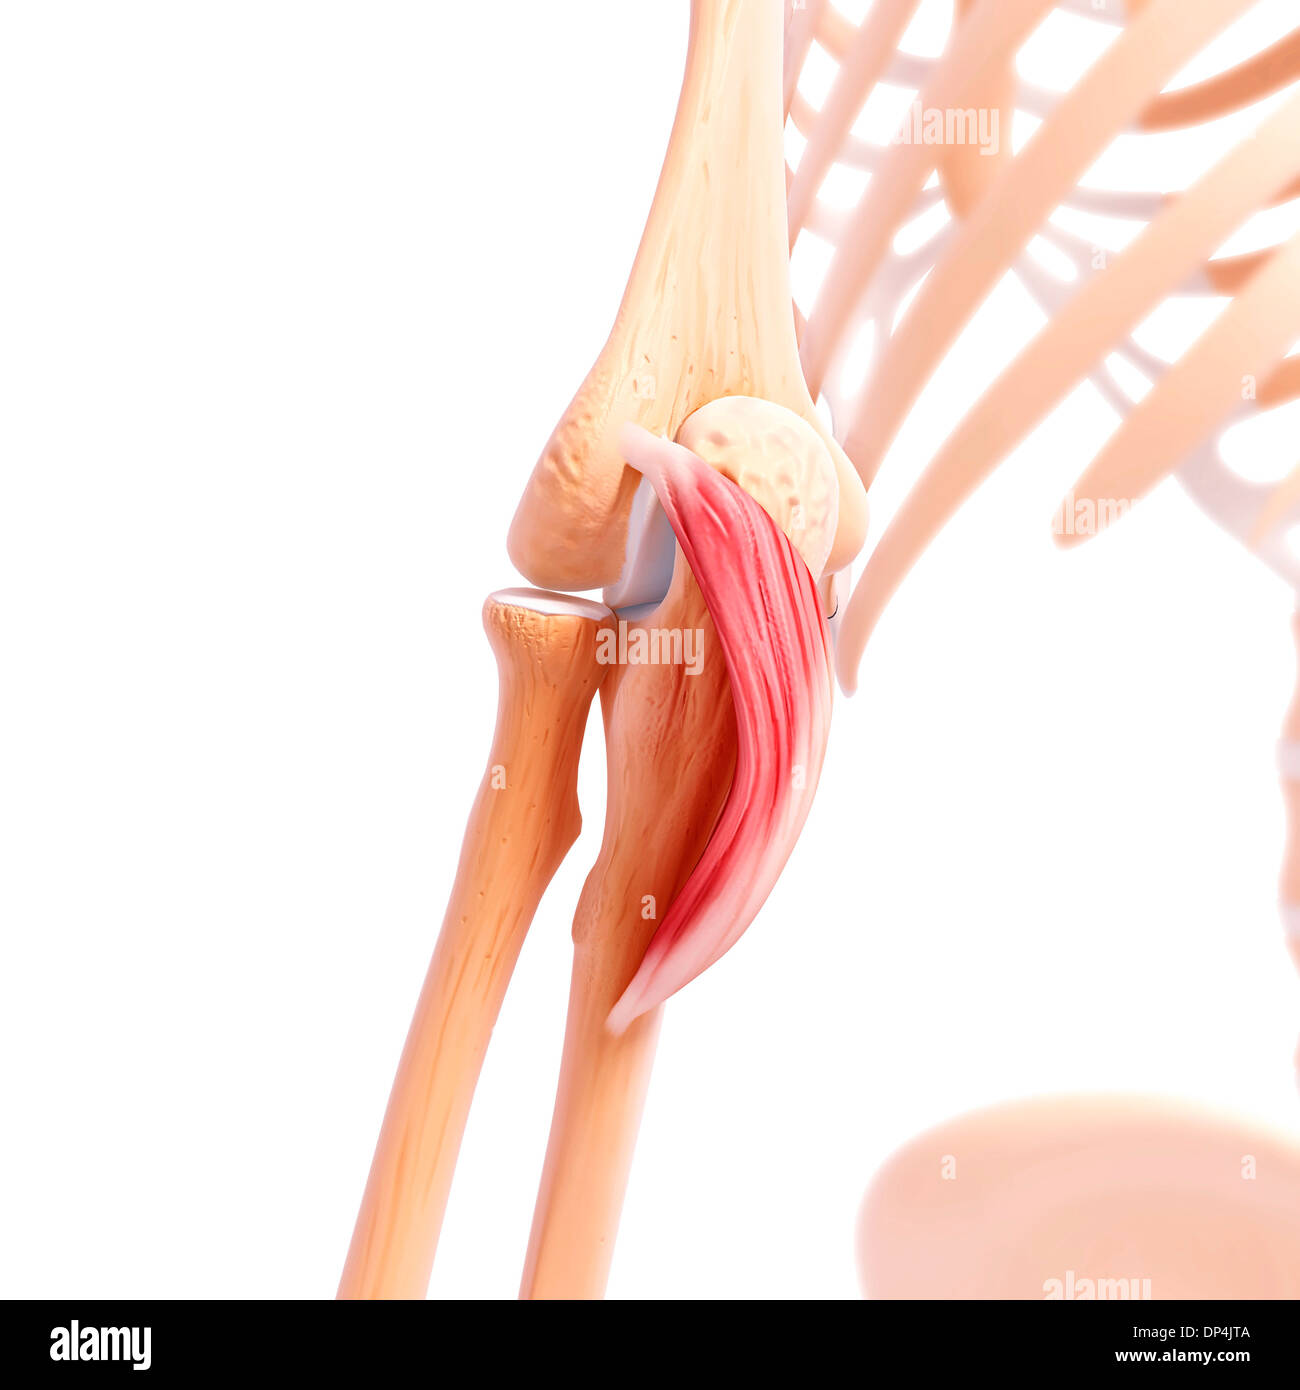 Anconeus Muscle Stock Photos & Anconeus Muscle Stock Images - Alamy